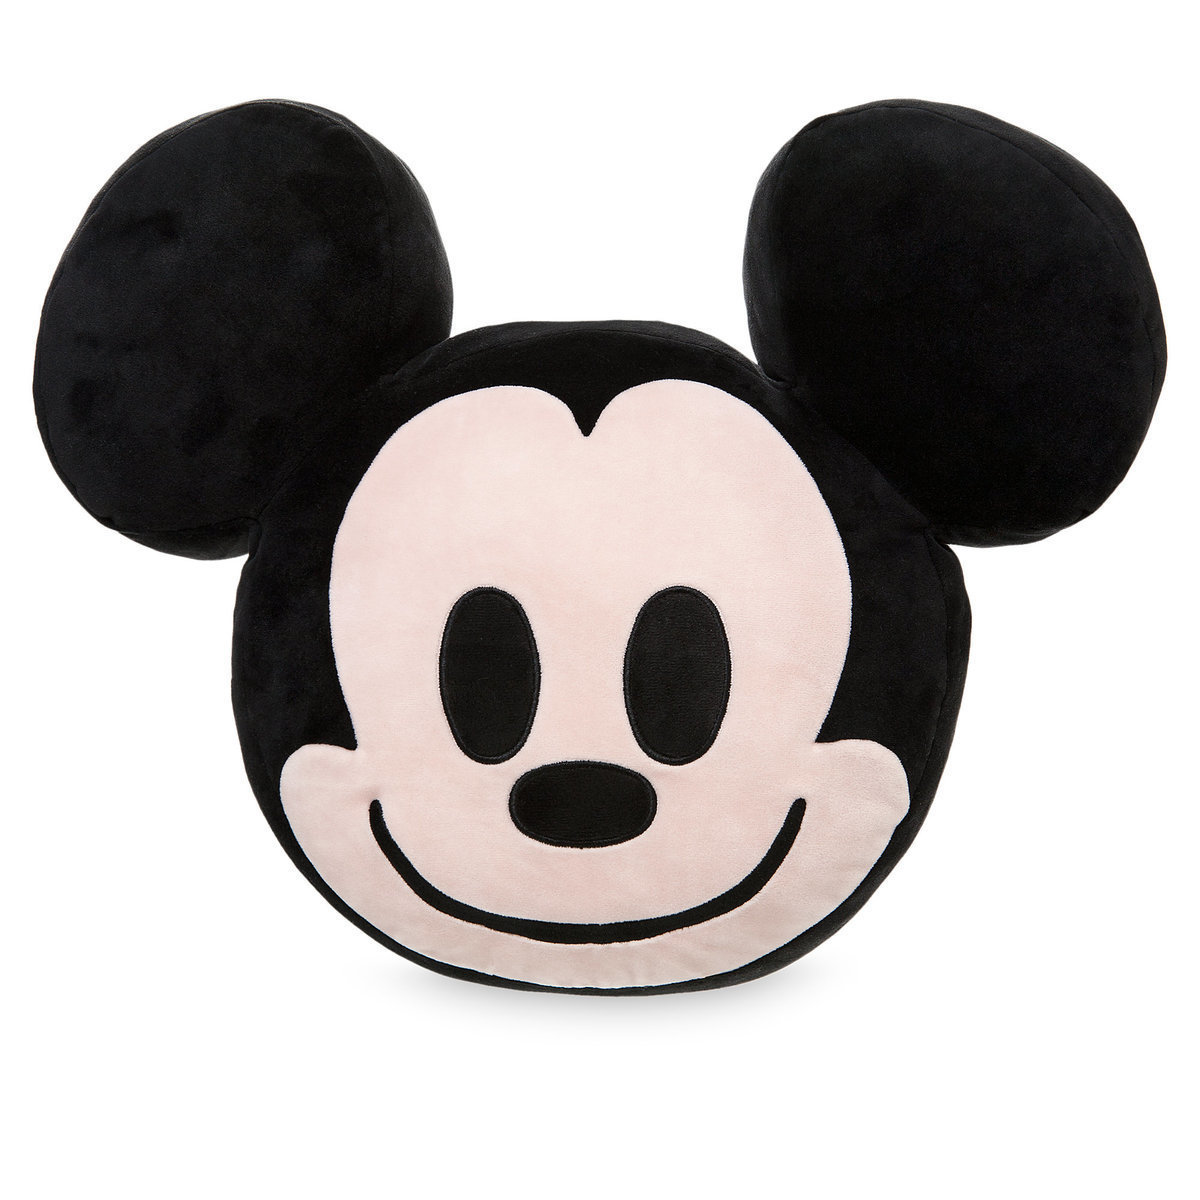 Mickey Mouse Emoji Pillow